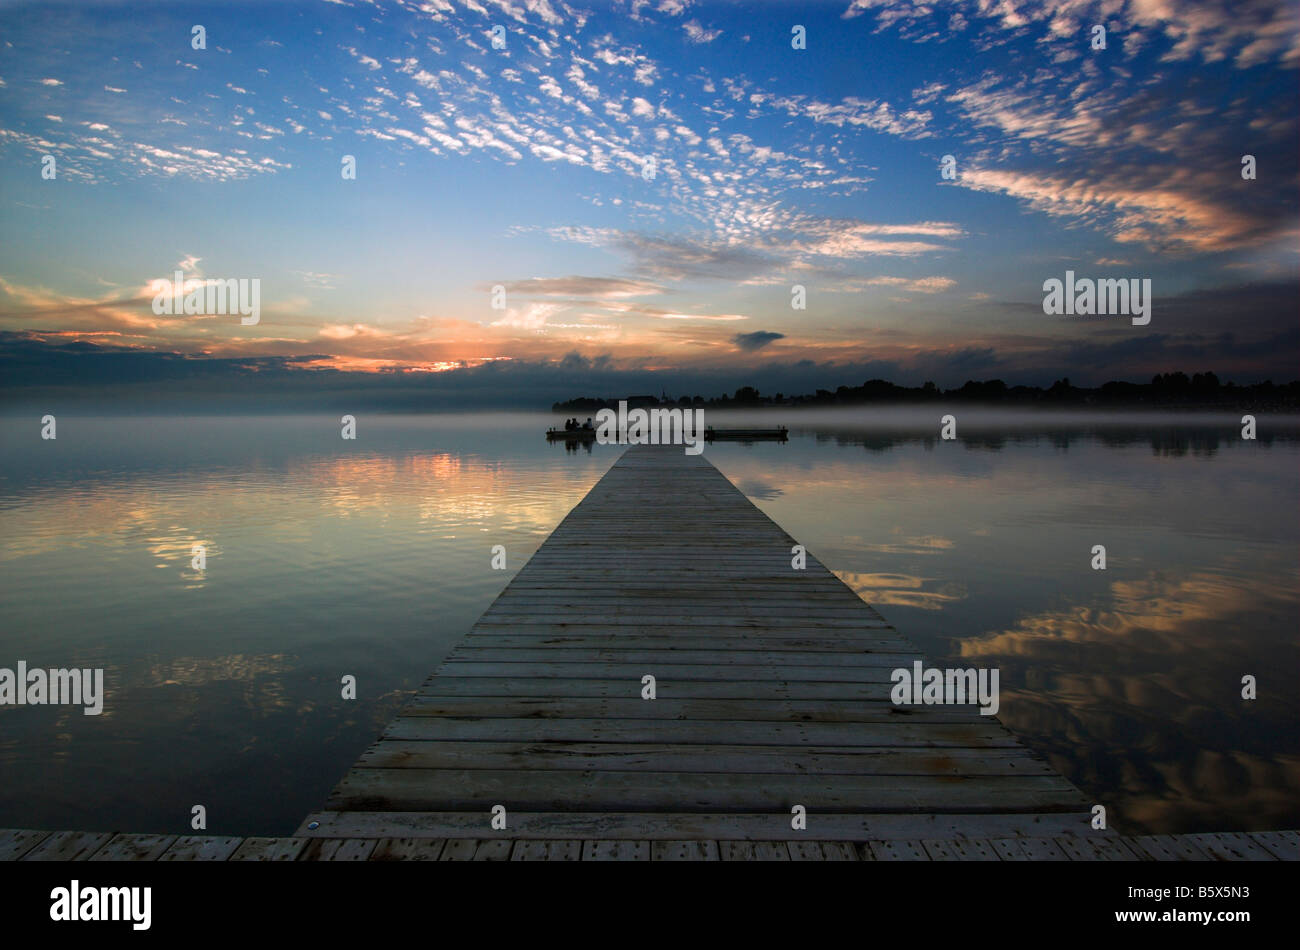 a-pier-at-sunset-B5X5N3.jpg